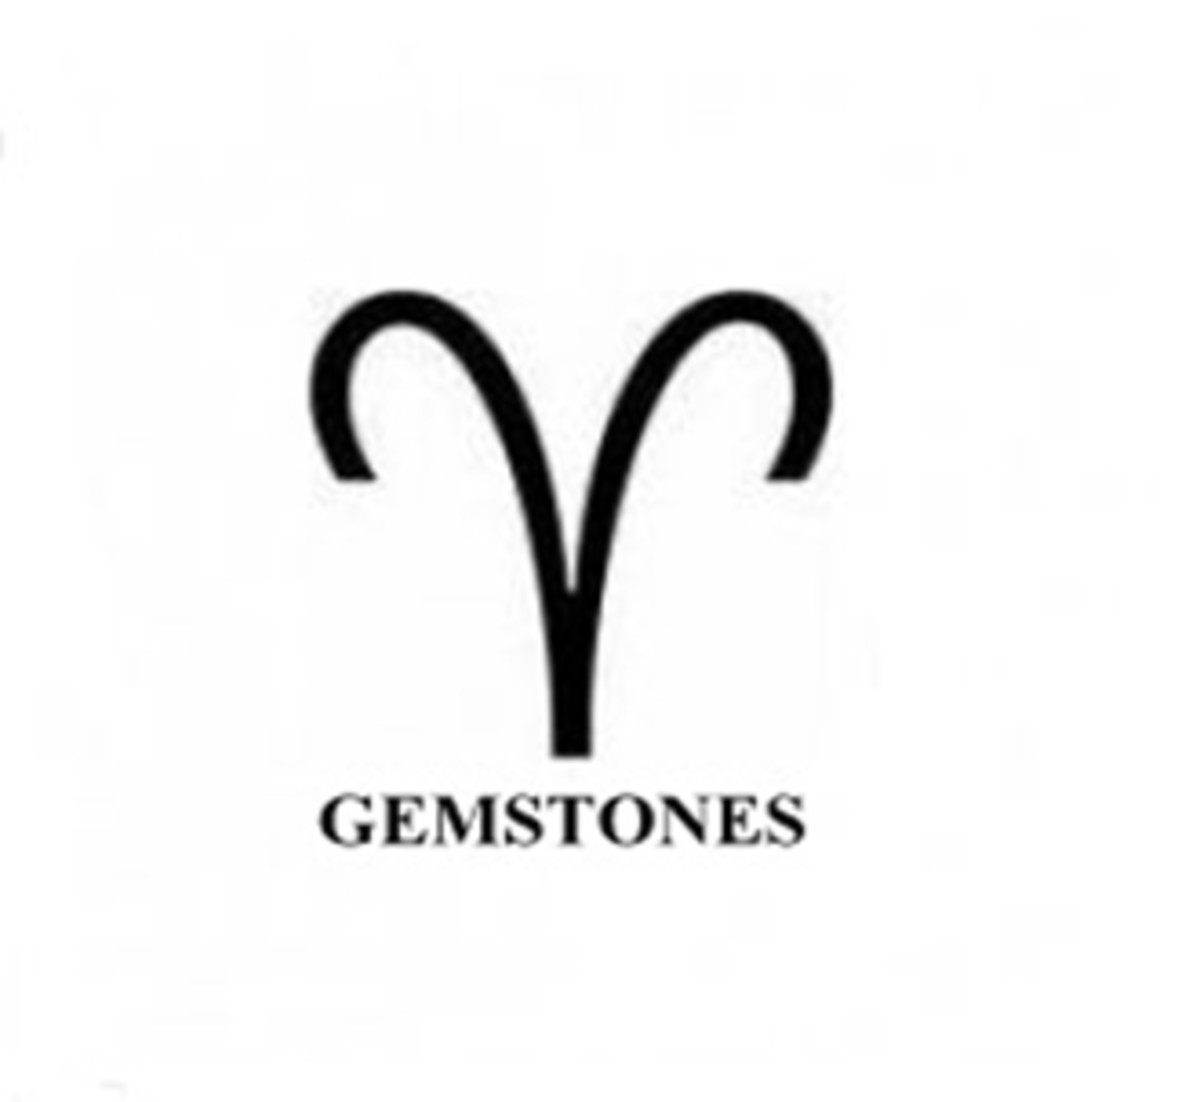 Aries Gemstones